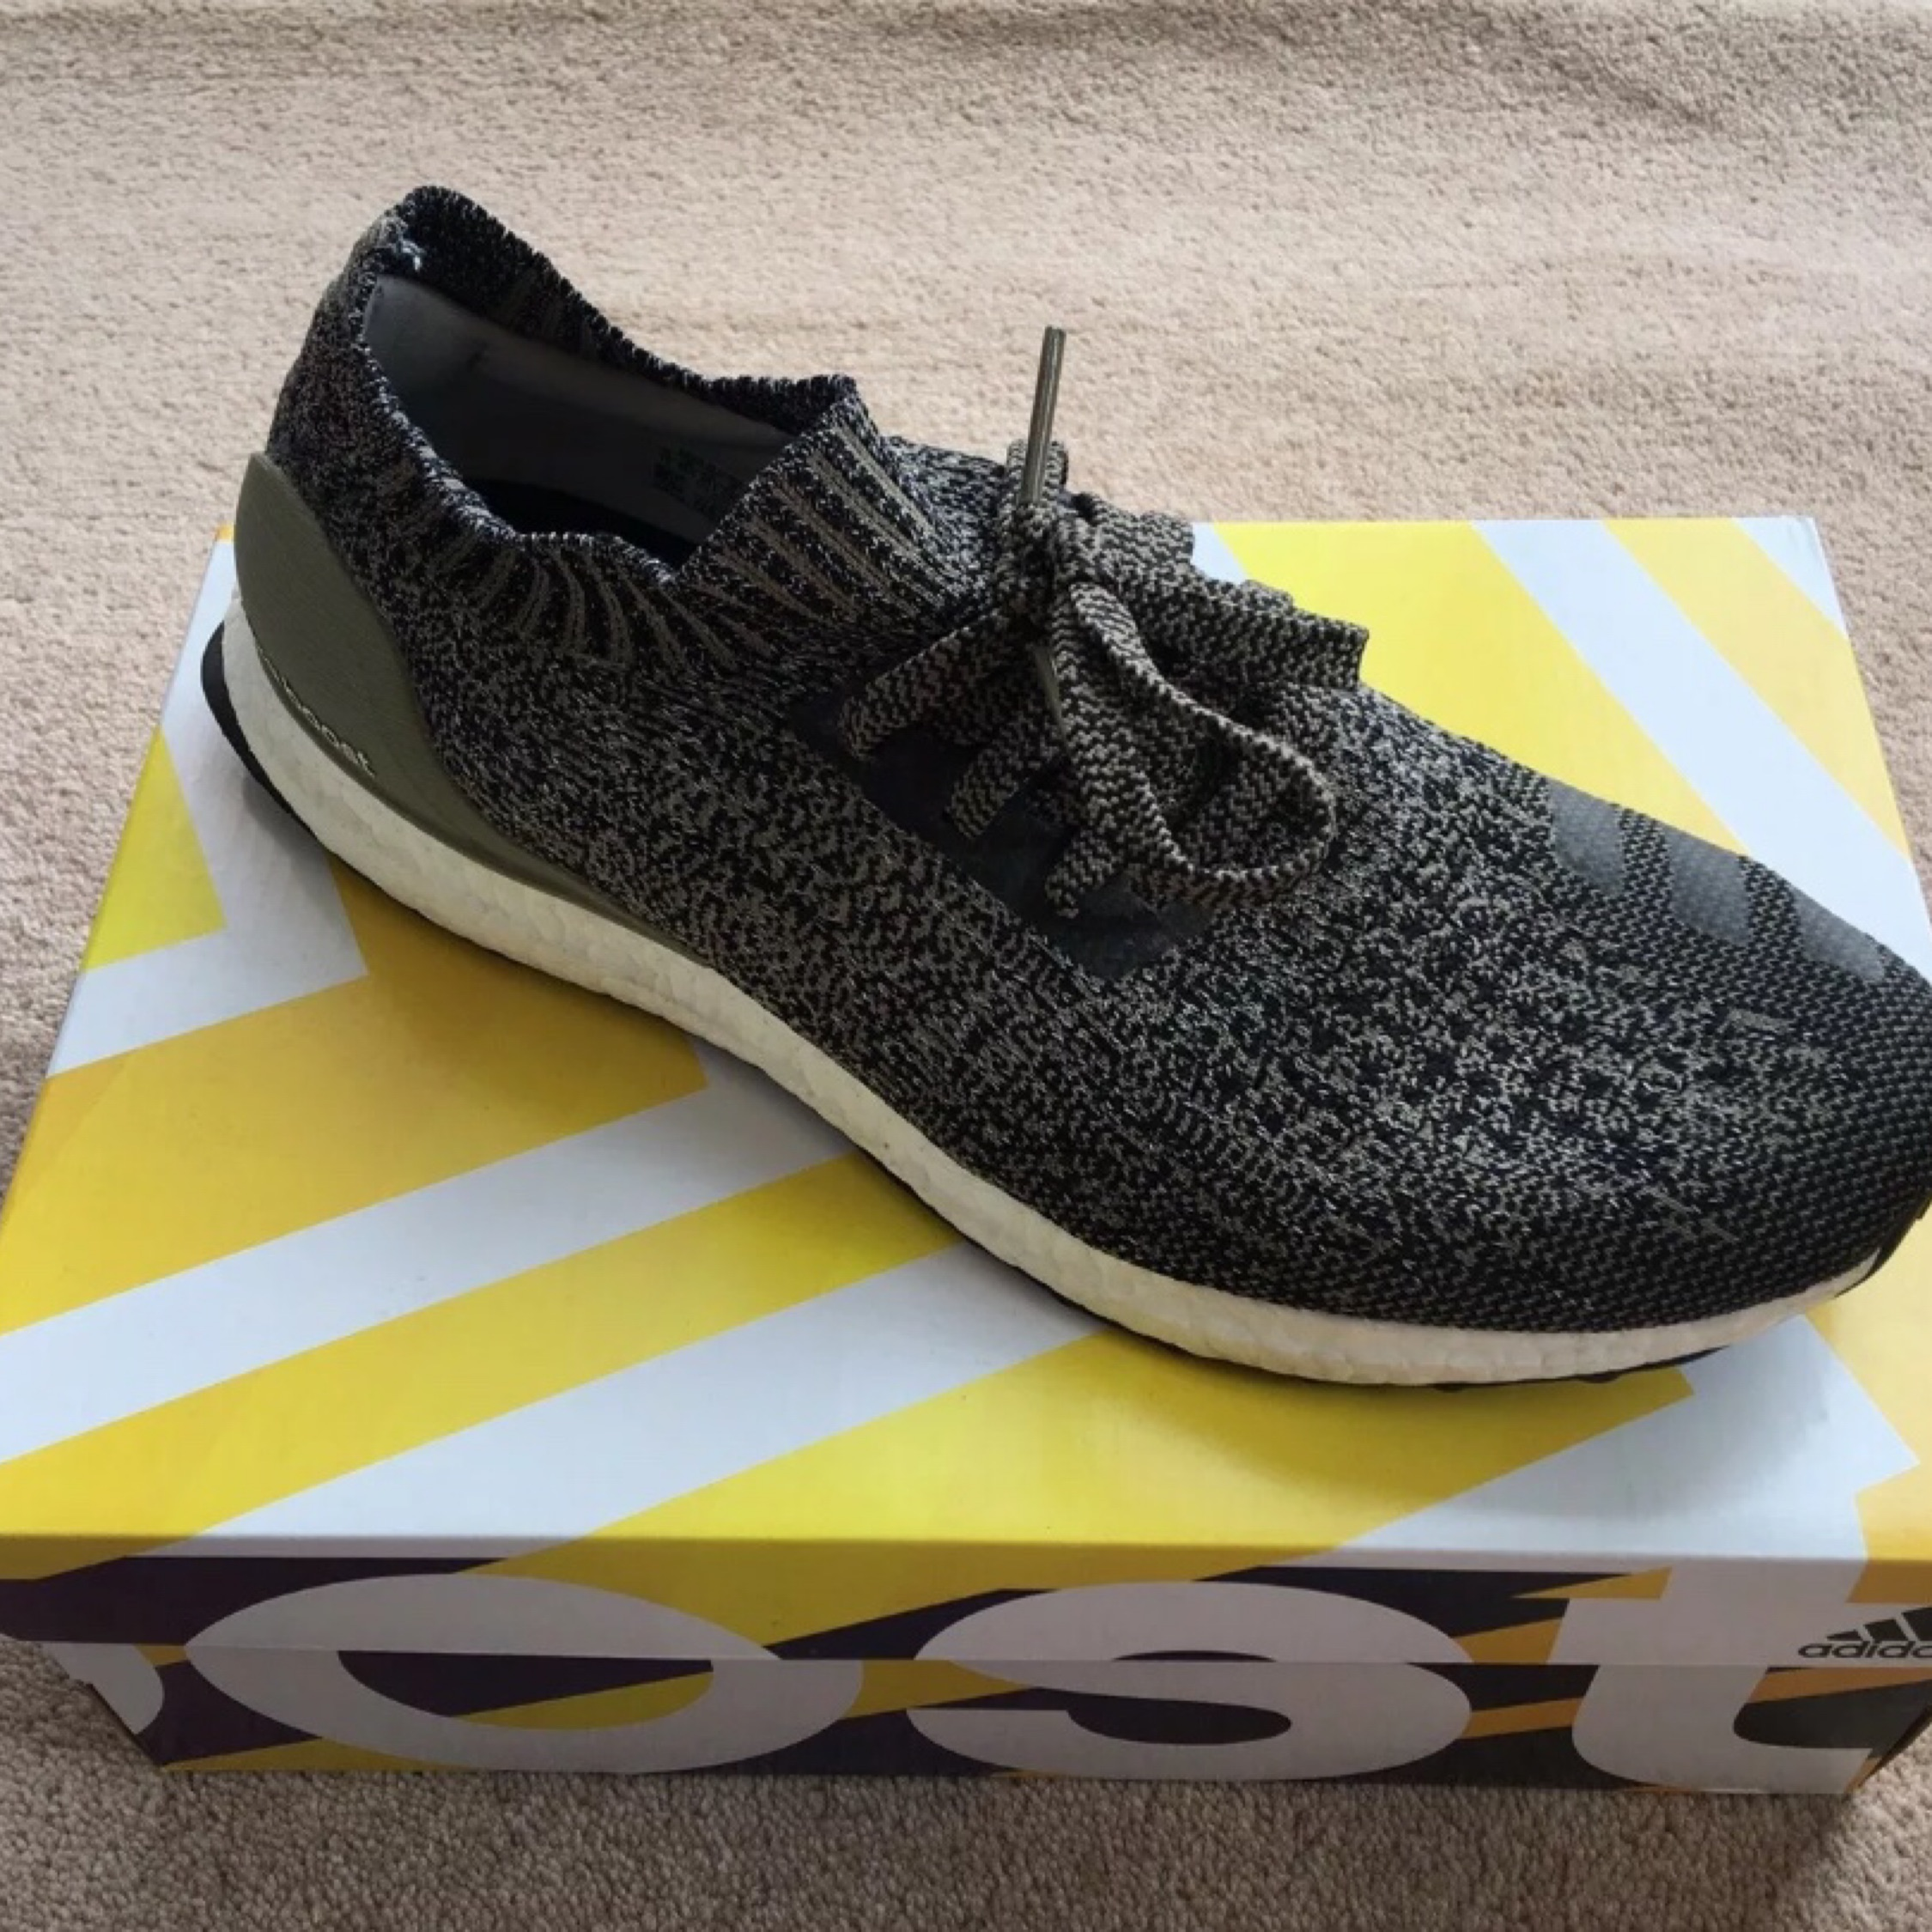 the best attitude a4d1a 96e47 Adidas Ultra Boost 4.0 Uncaged Cargo/Black 10 1/2